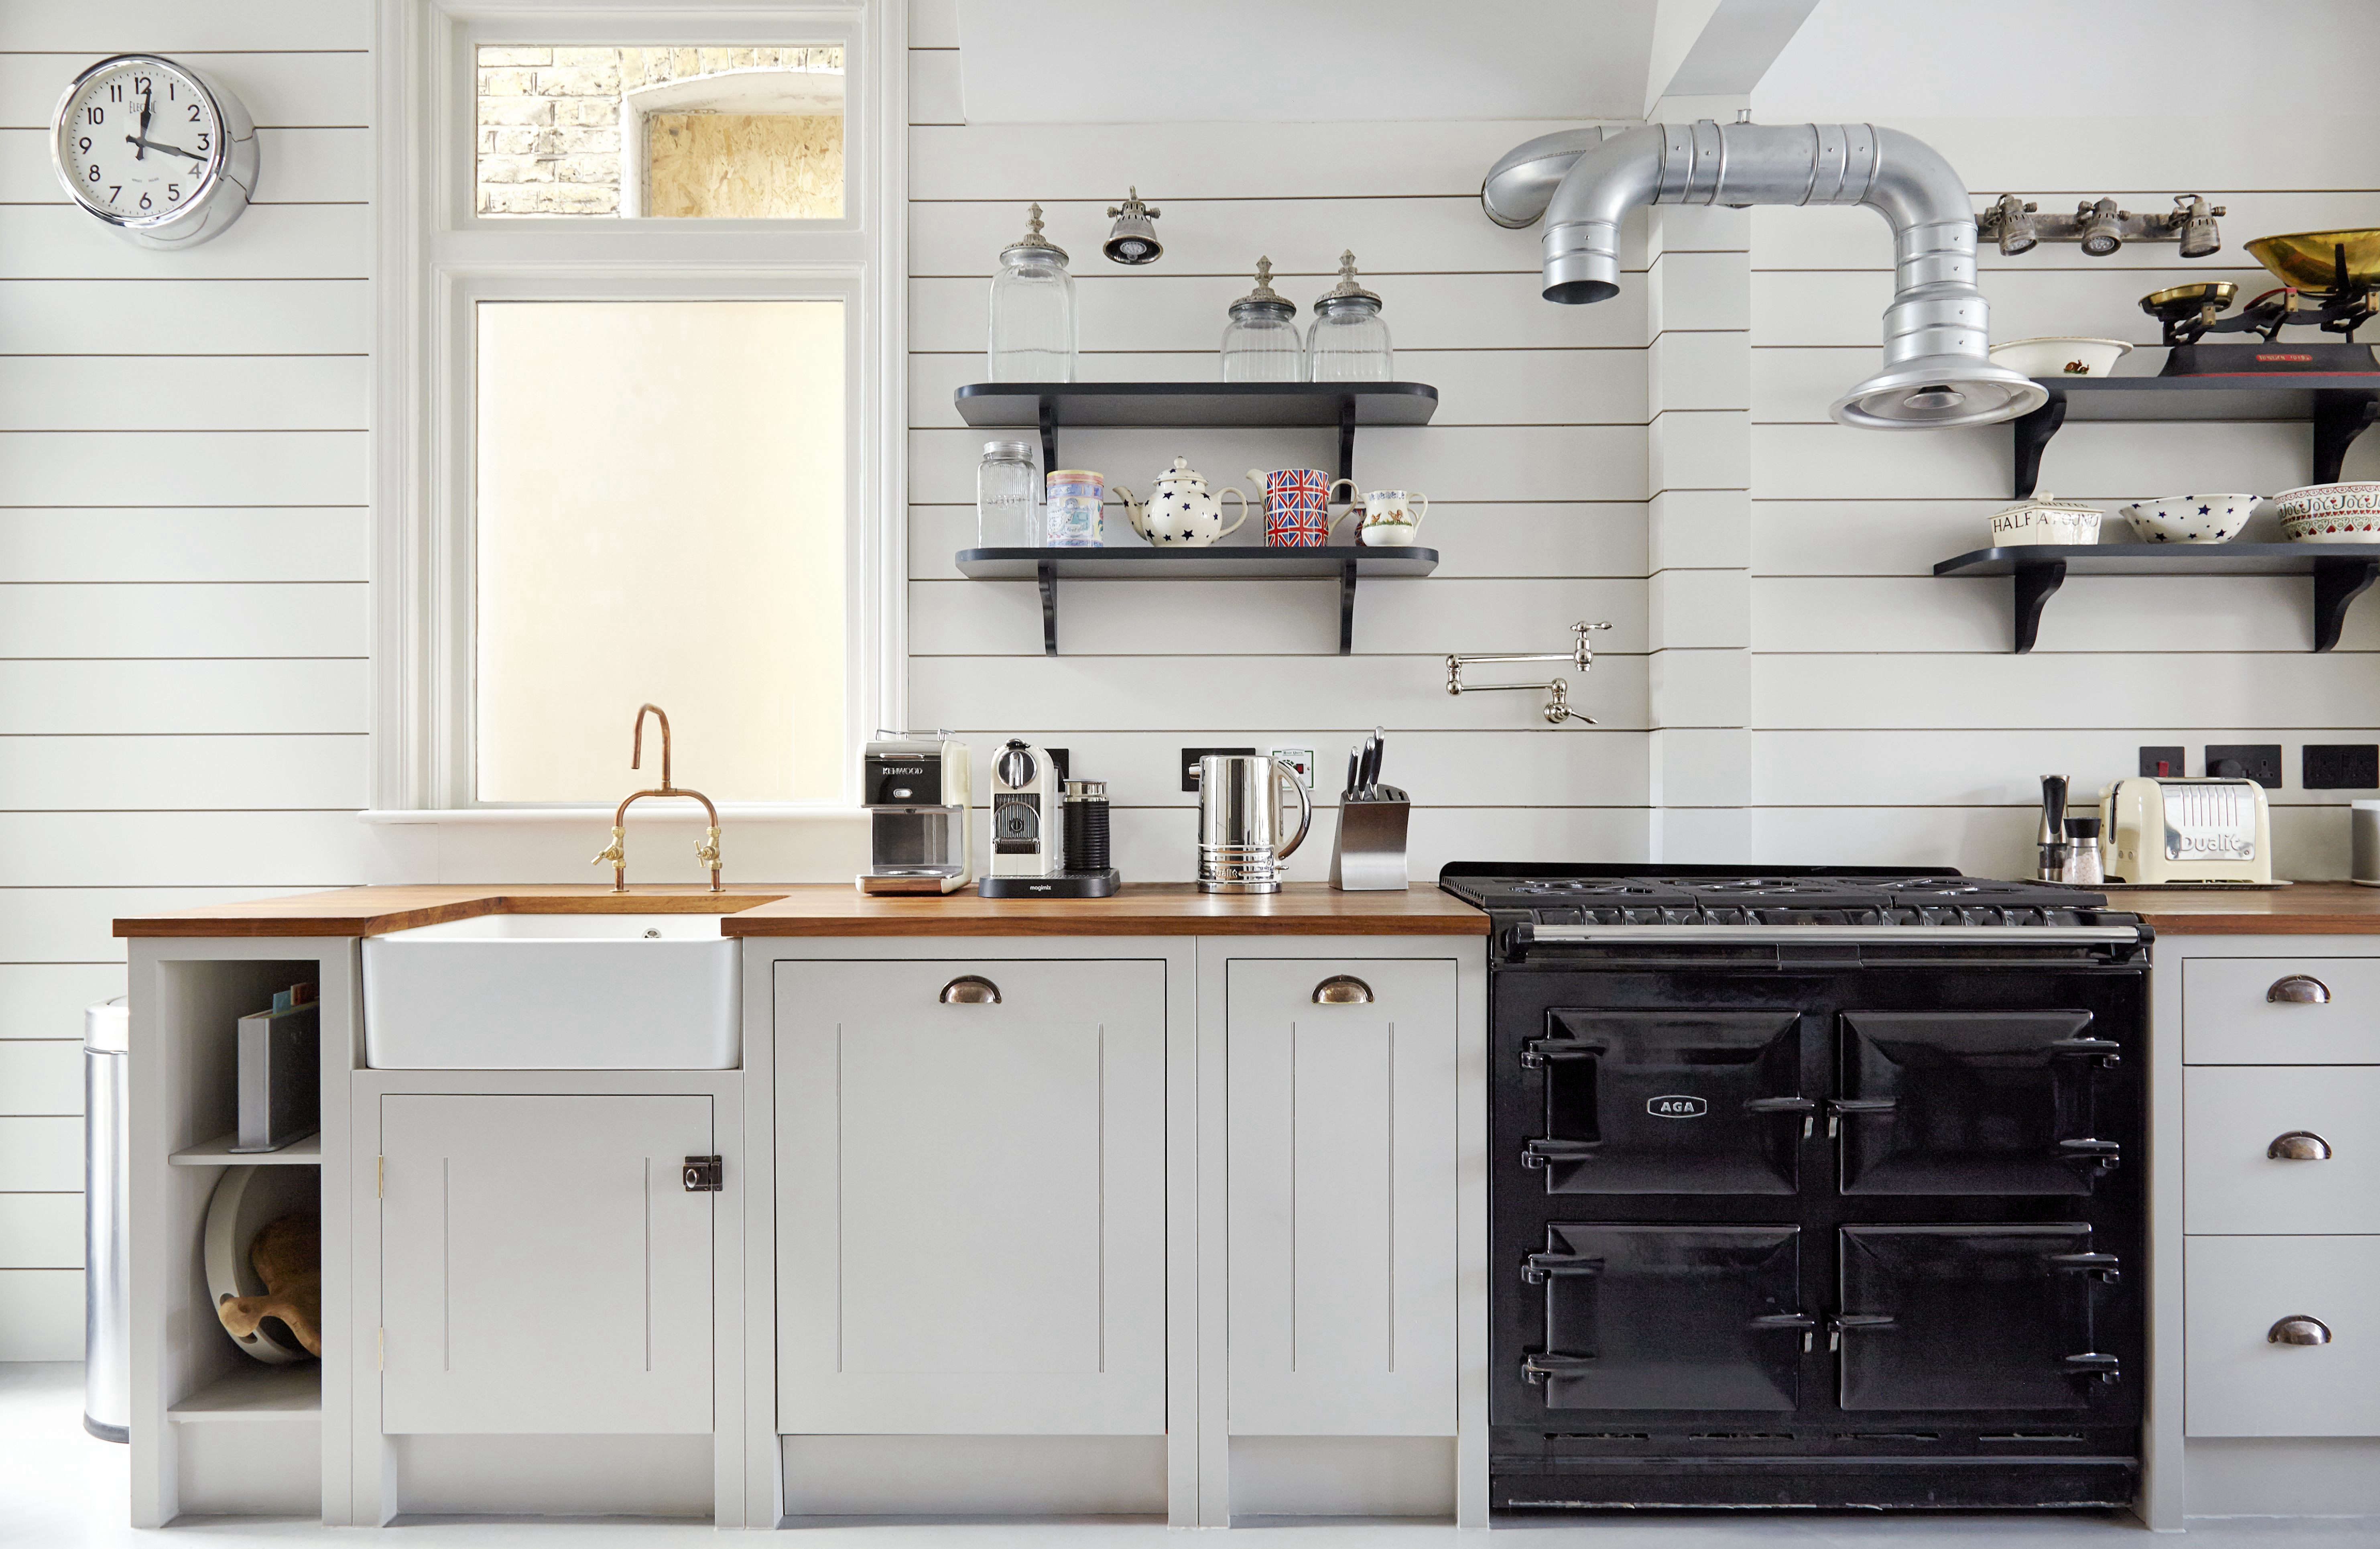 10x10 kitchen remodel cost small design ideas shiplap wood paneling in a classic english